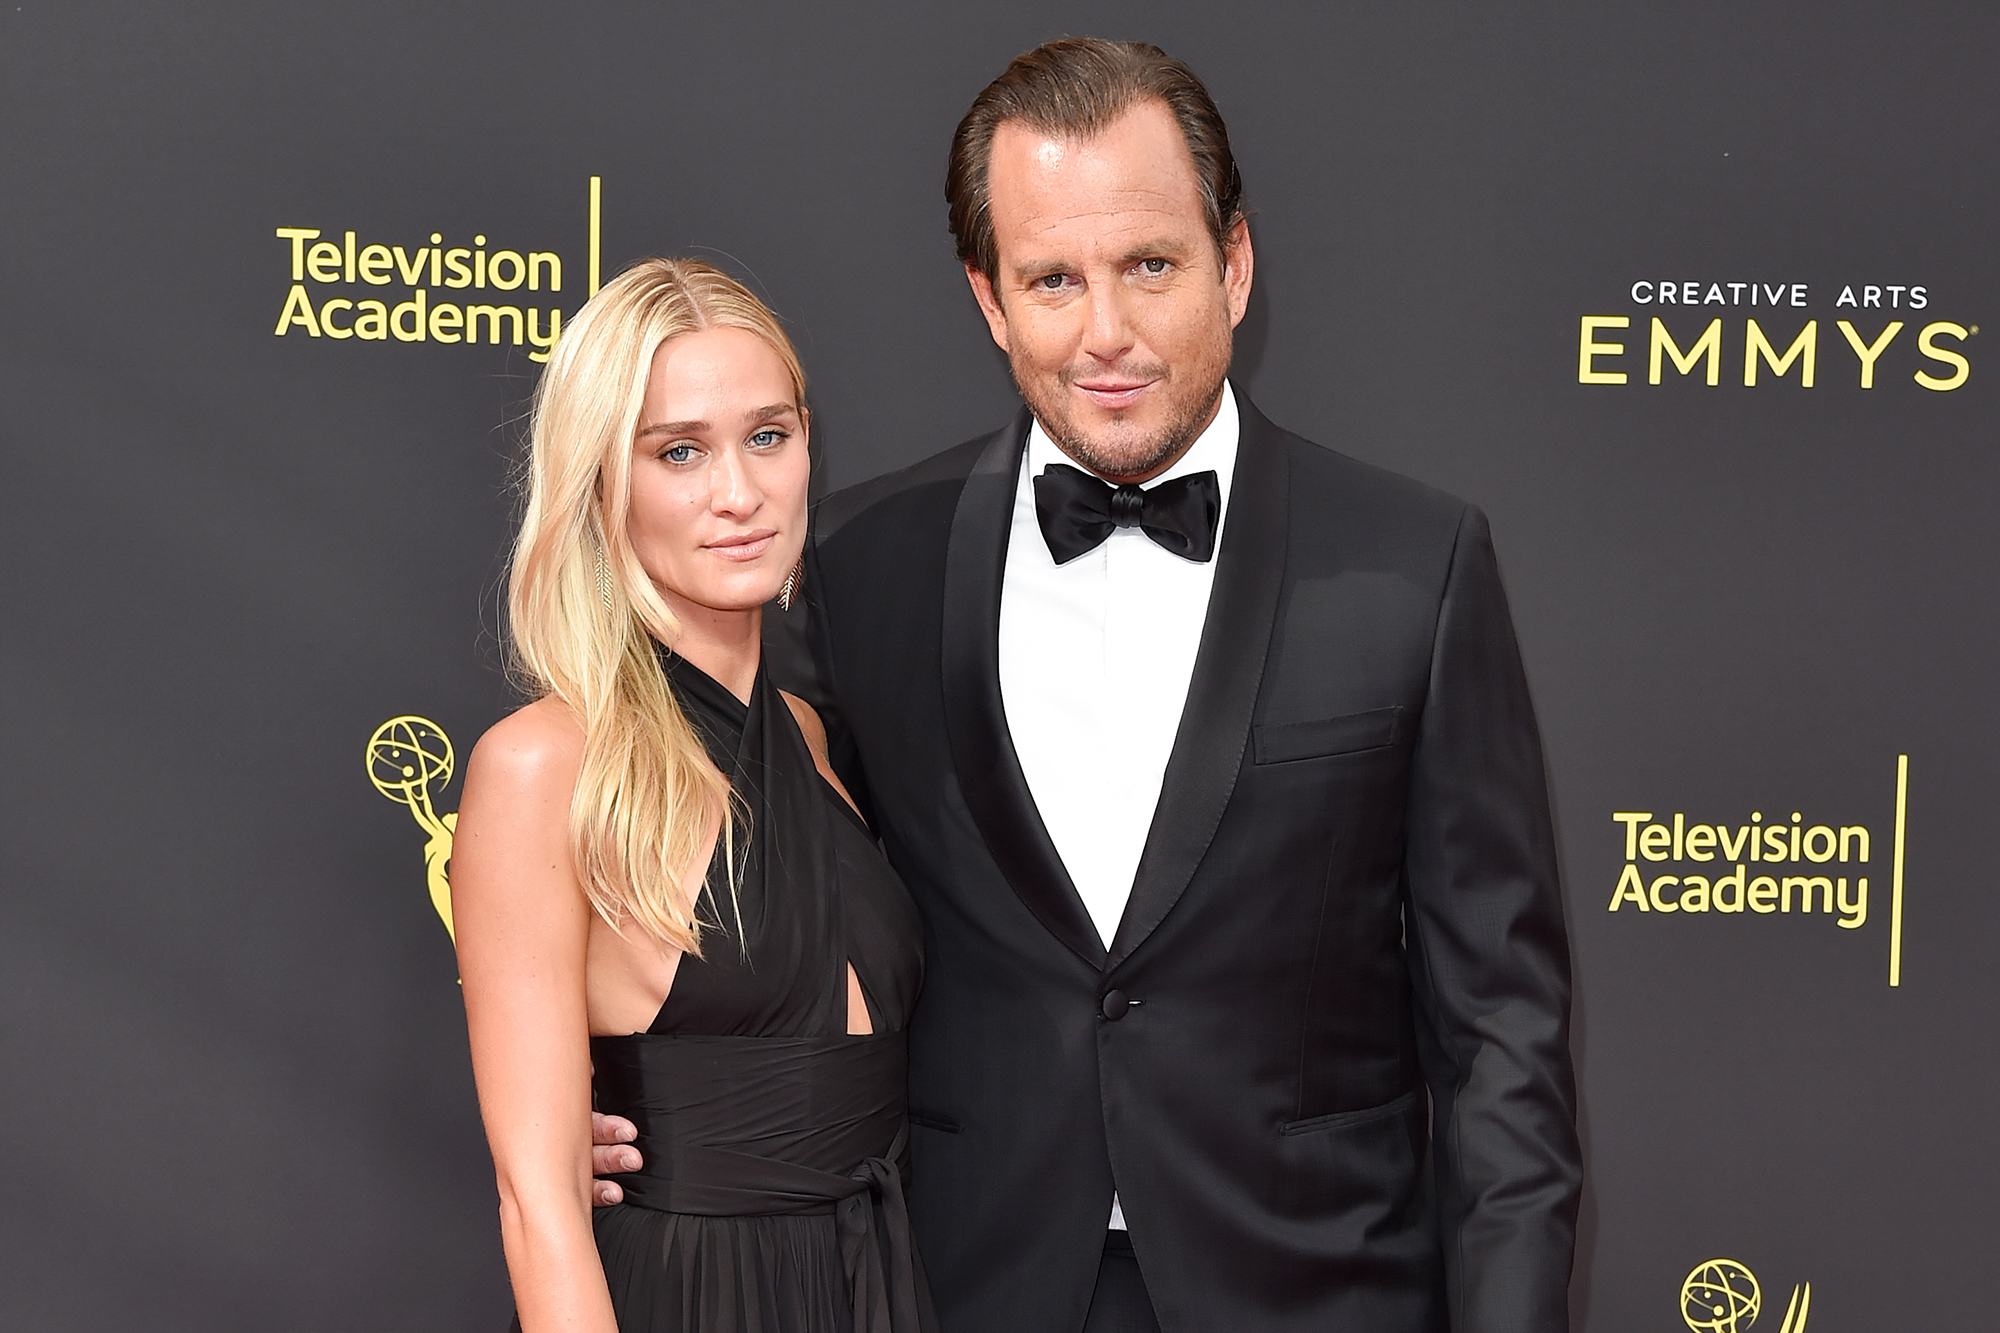 Alessandra Brawn and Will Arnett